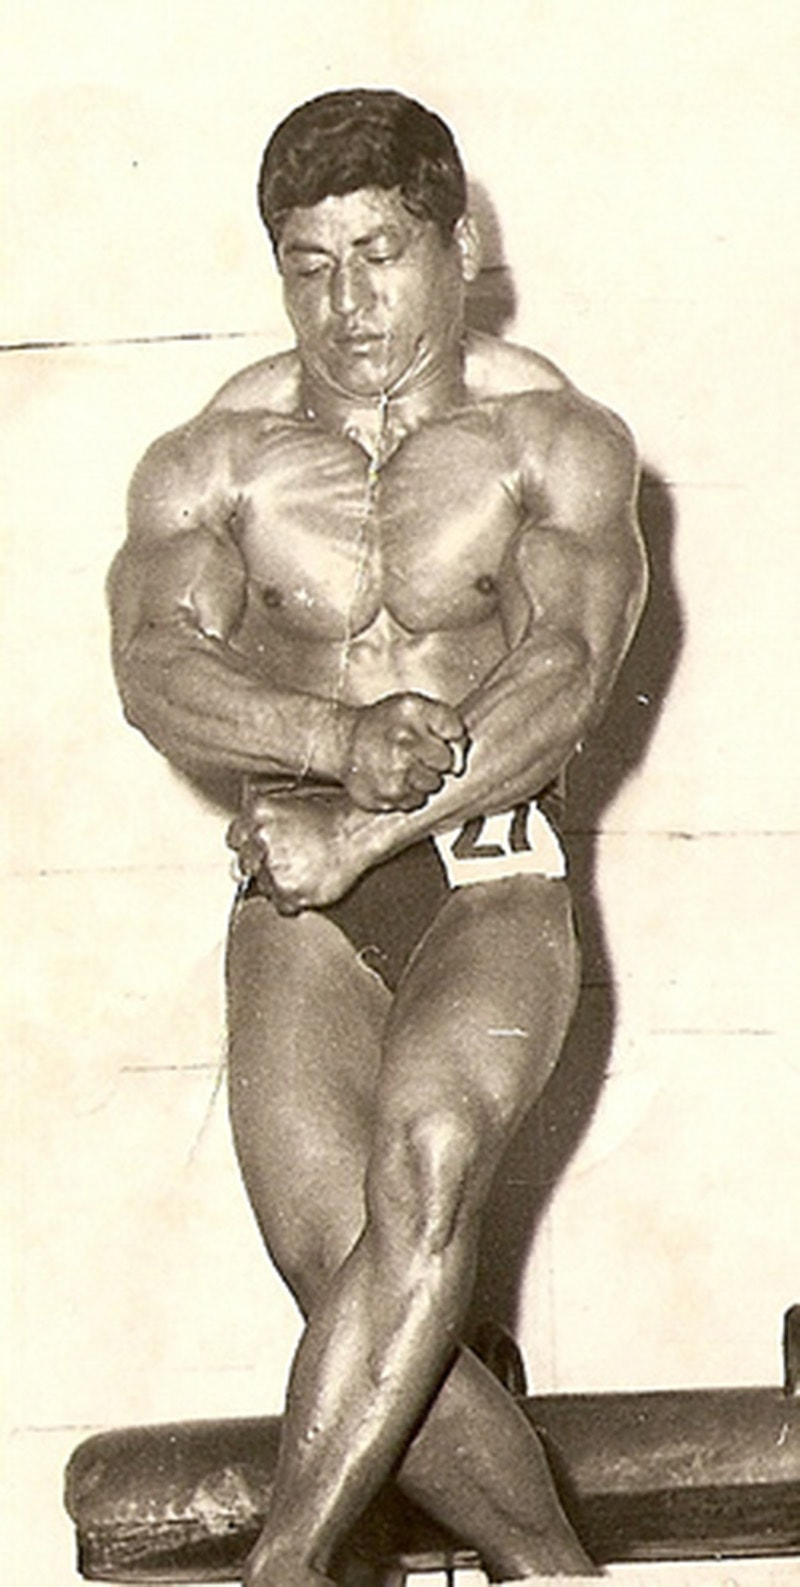 Brawn to rule: Pakistani bodybuilder, Ishaq Baig, on his way to winning the title of Mr. Asia in 1964.